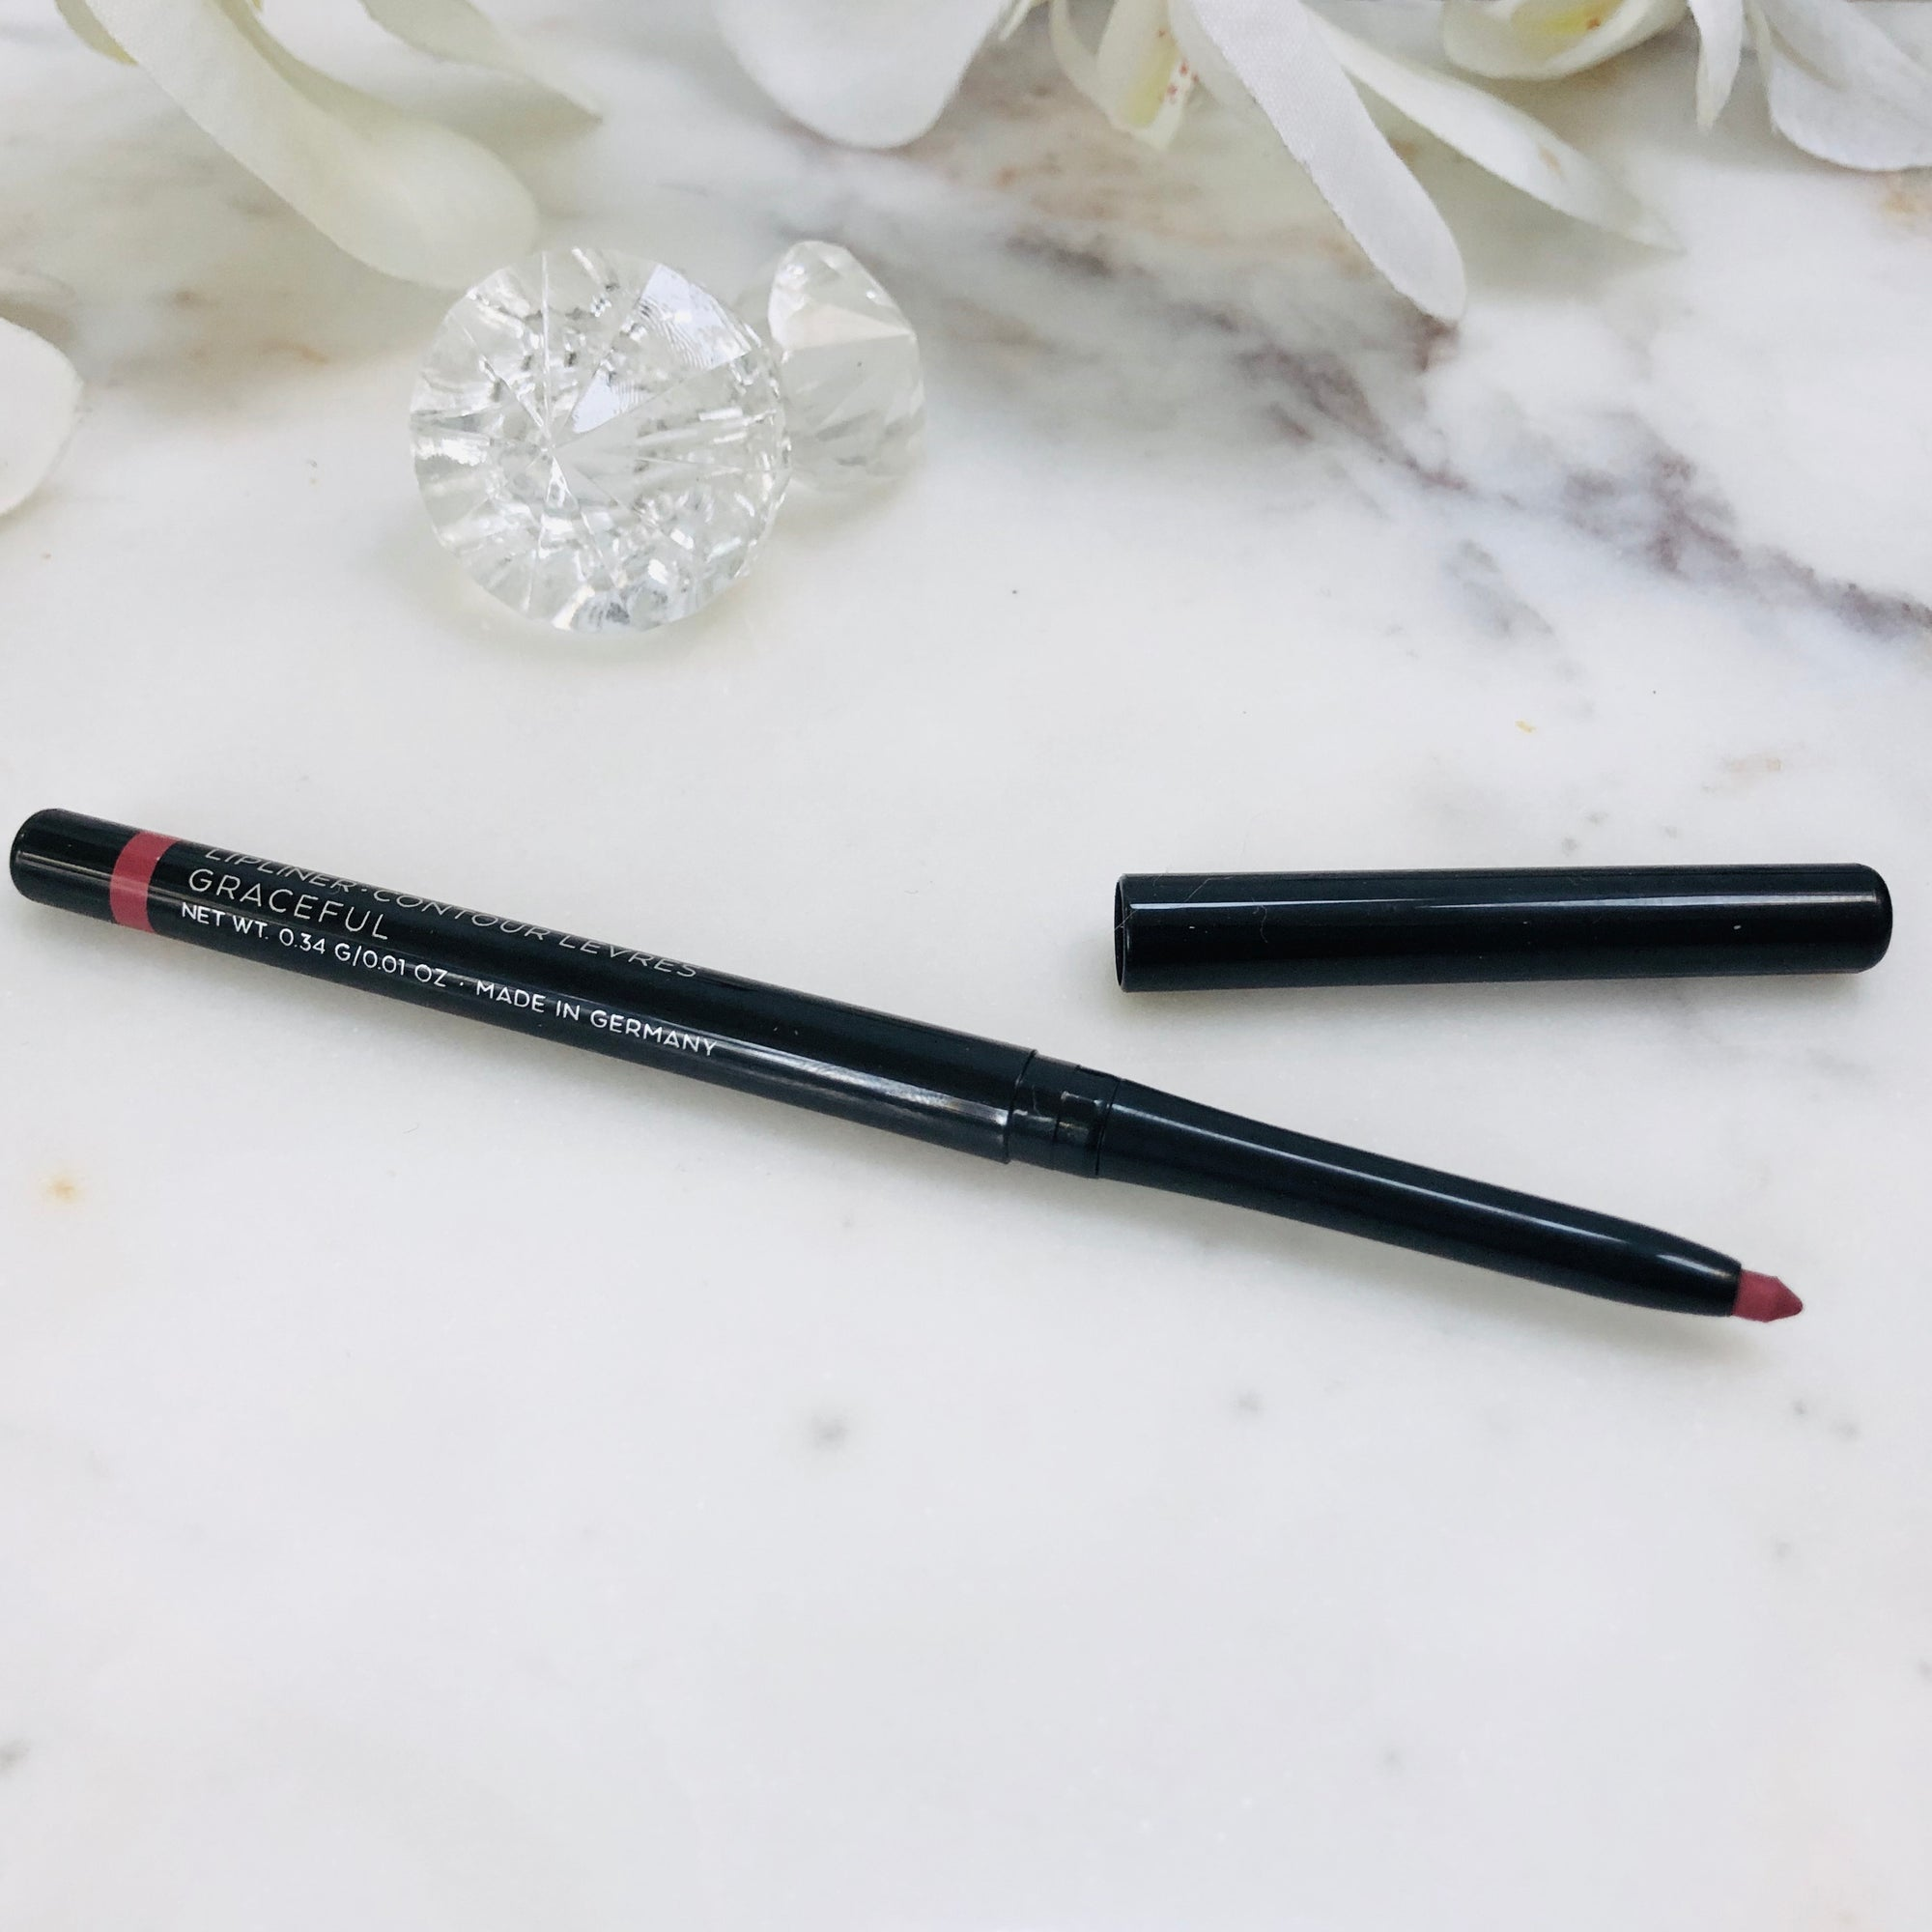 Waterproof Lip Liner - Graceful